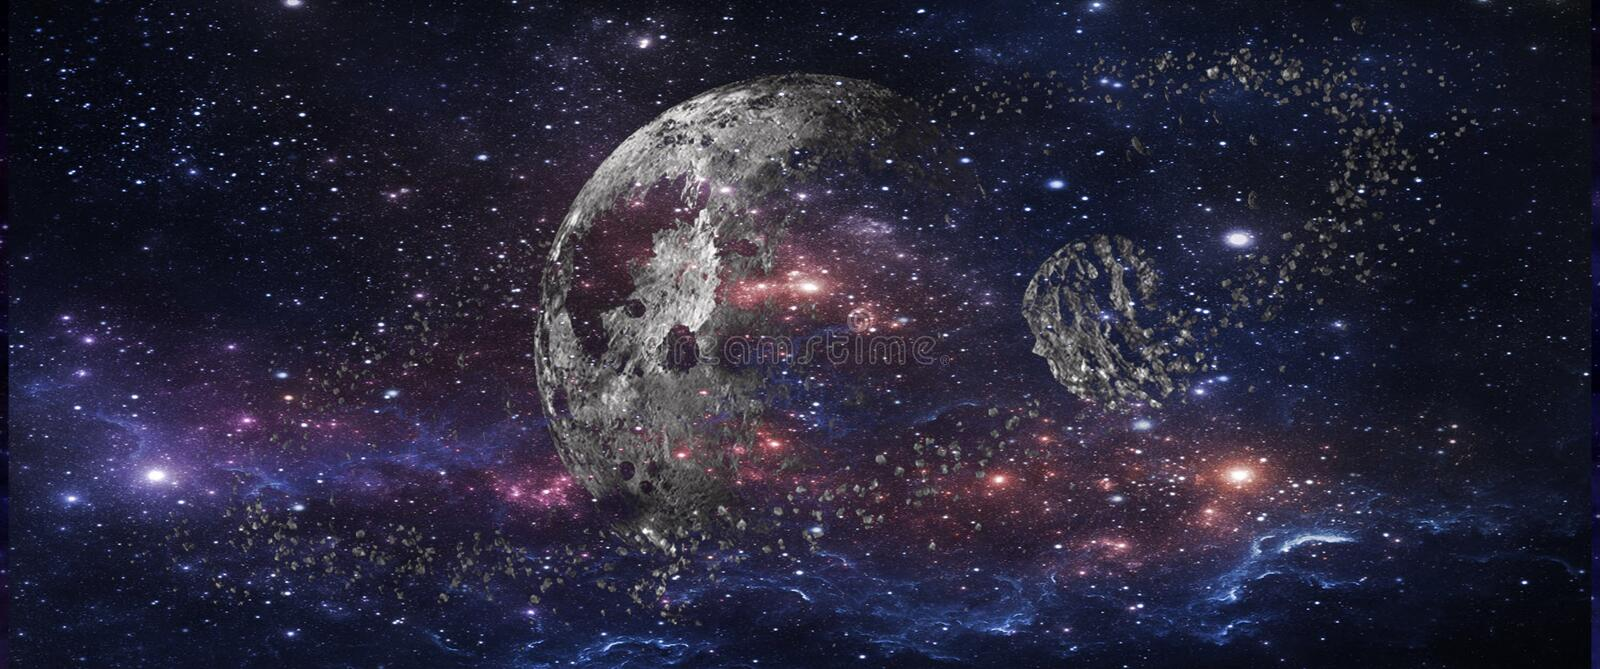 Planets and galaxies, science fiction wallpaper. Beauty of deep space. Billions of galaxies in the universe Cosmic art background royalty free stock photography